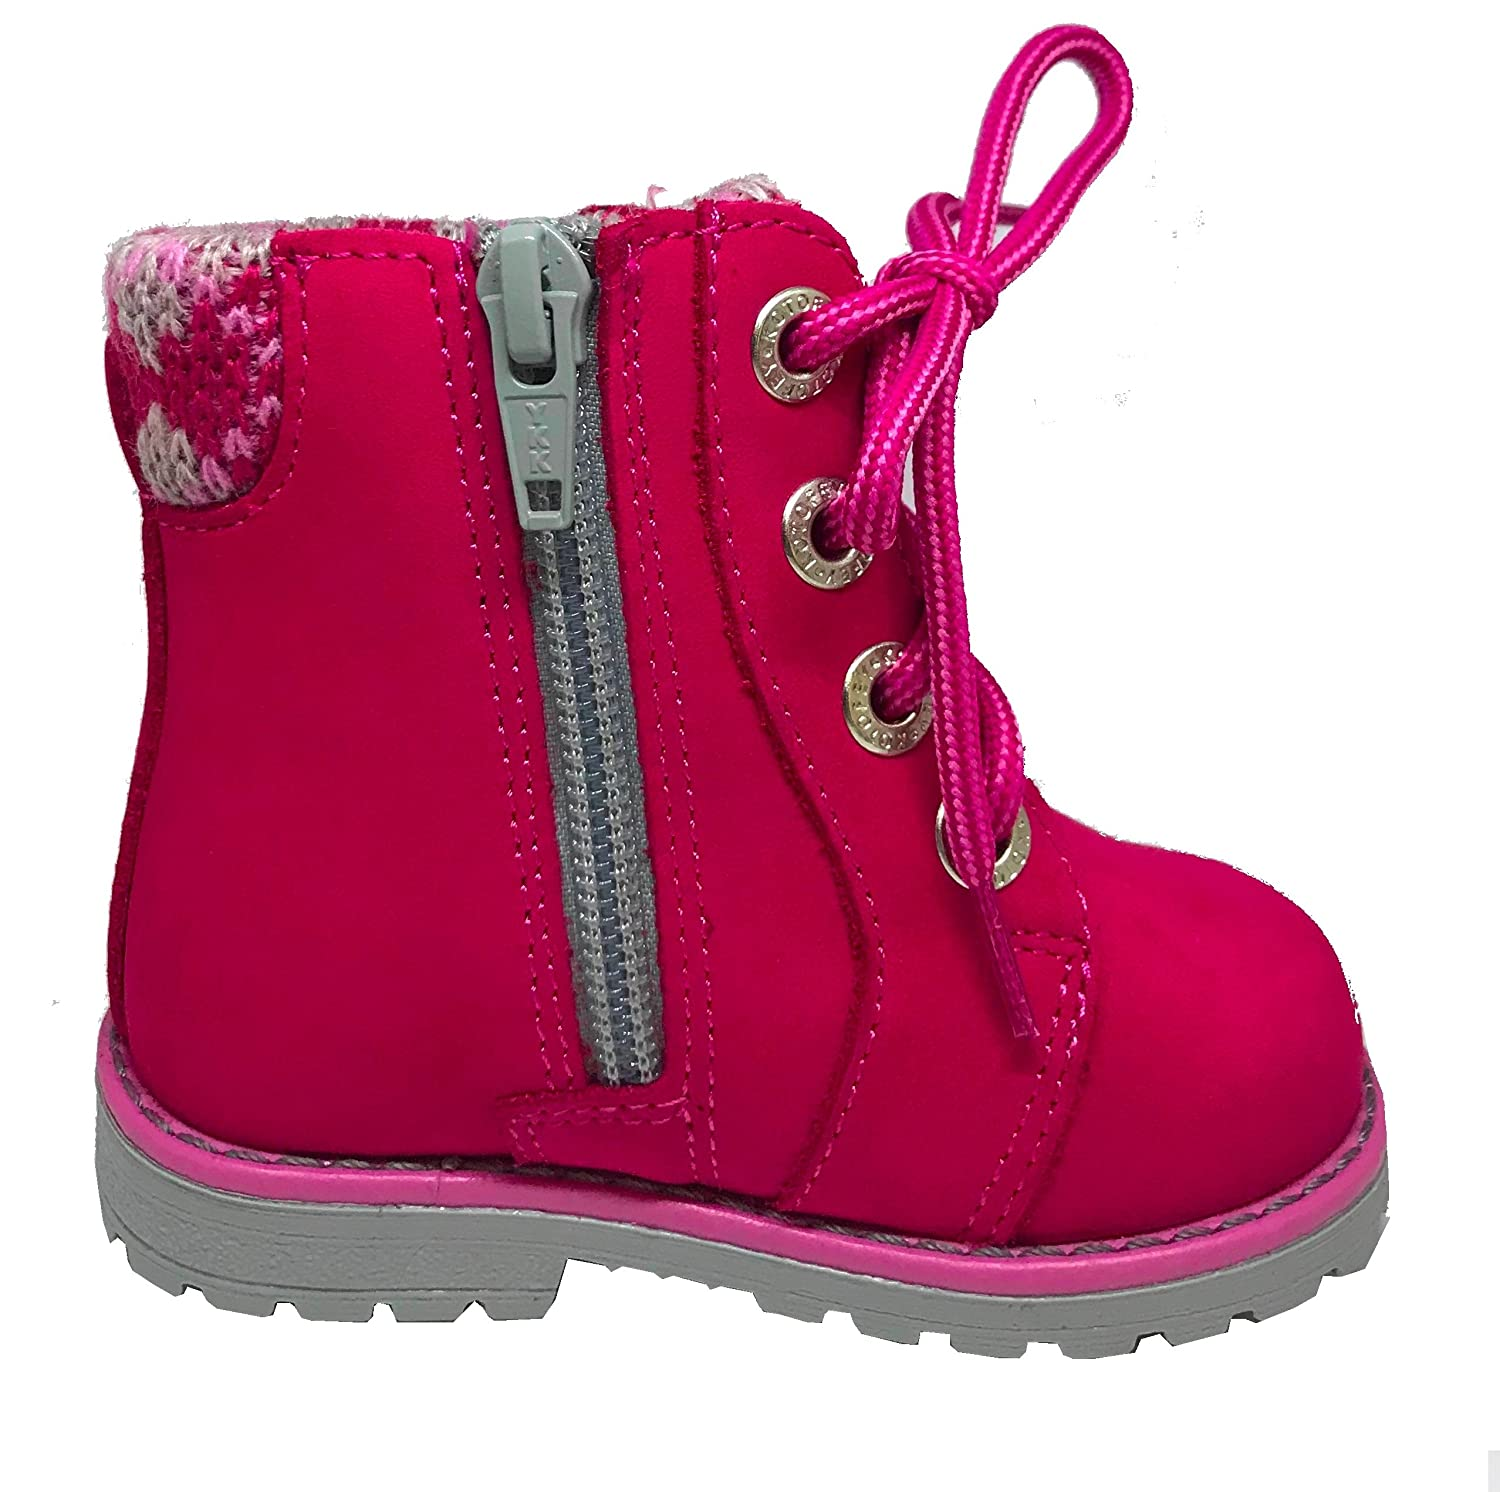 Kotofey Girls Red Boots 052078-34 Genuine Leather Shoes with Wool Lining and Wool Insole